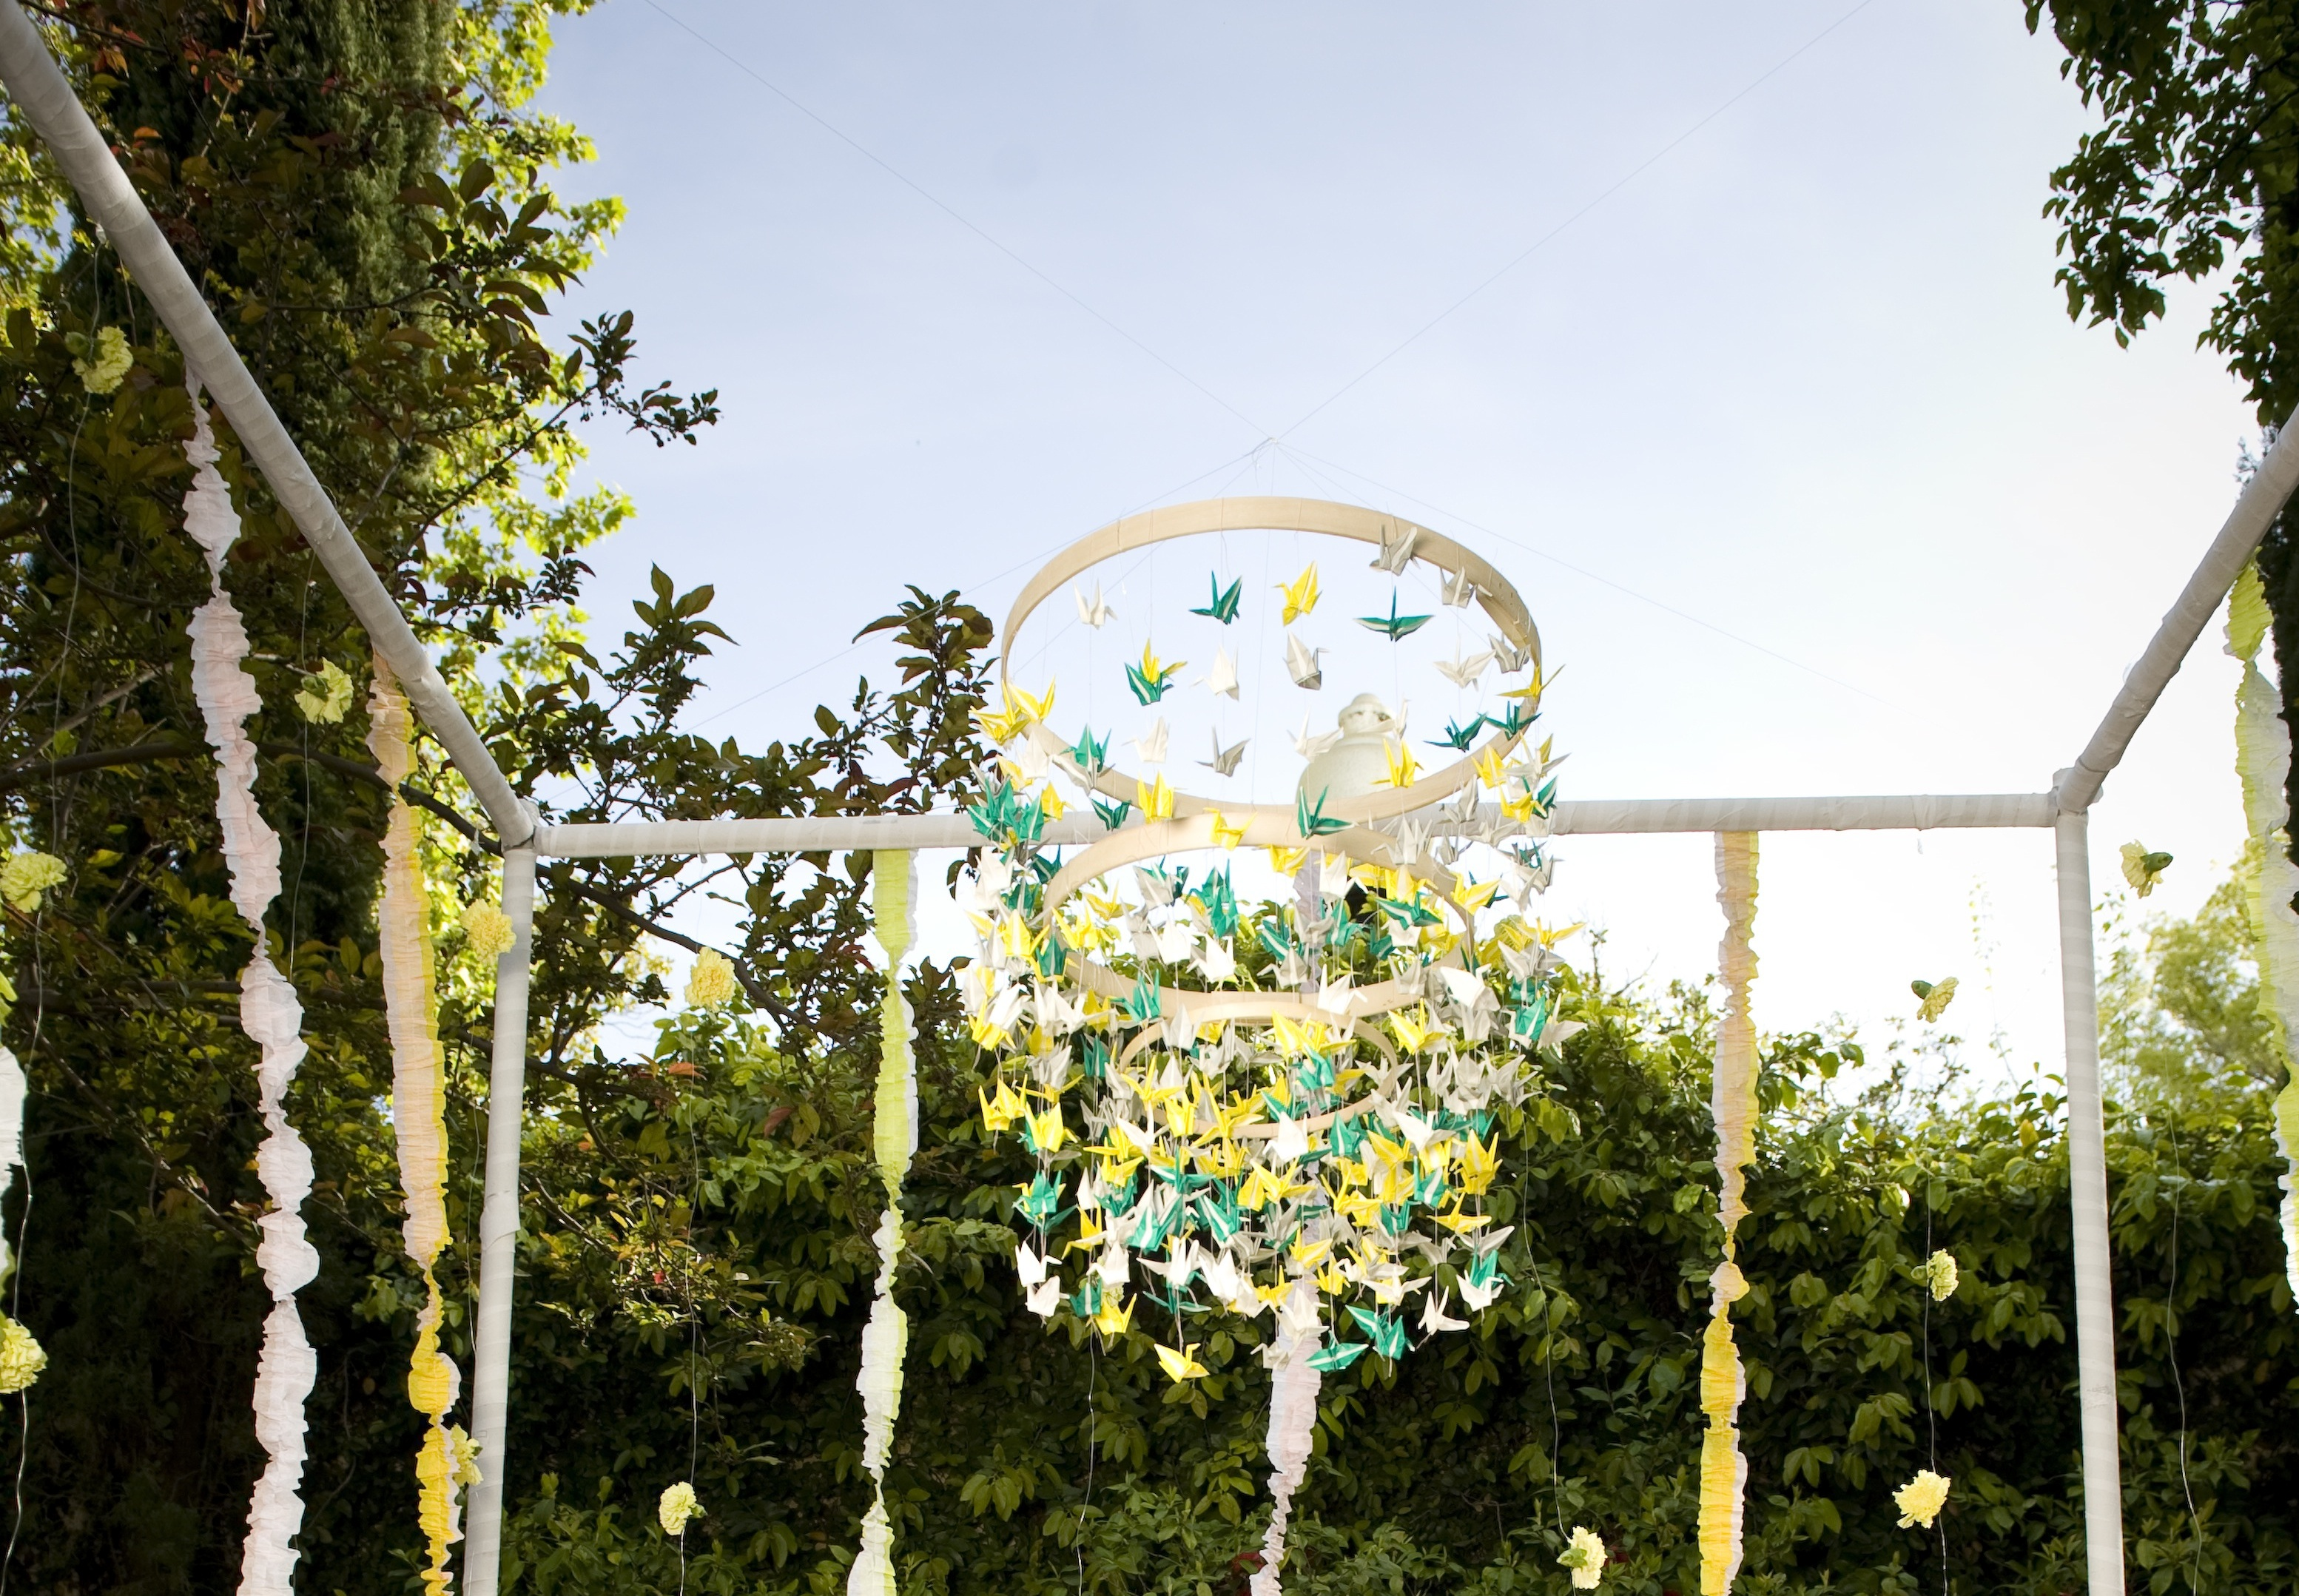 Whimsical-garden-wedding-paper-crane-arbor.original